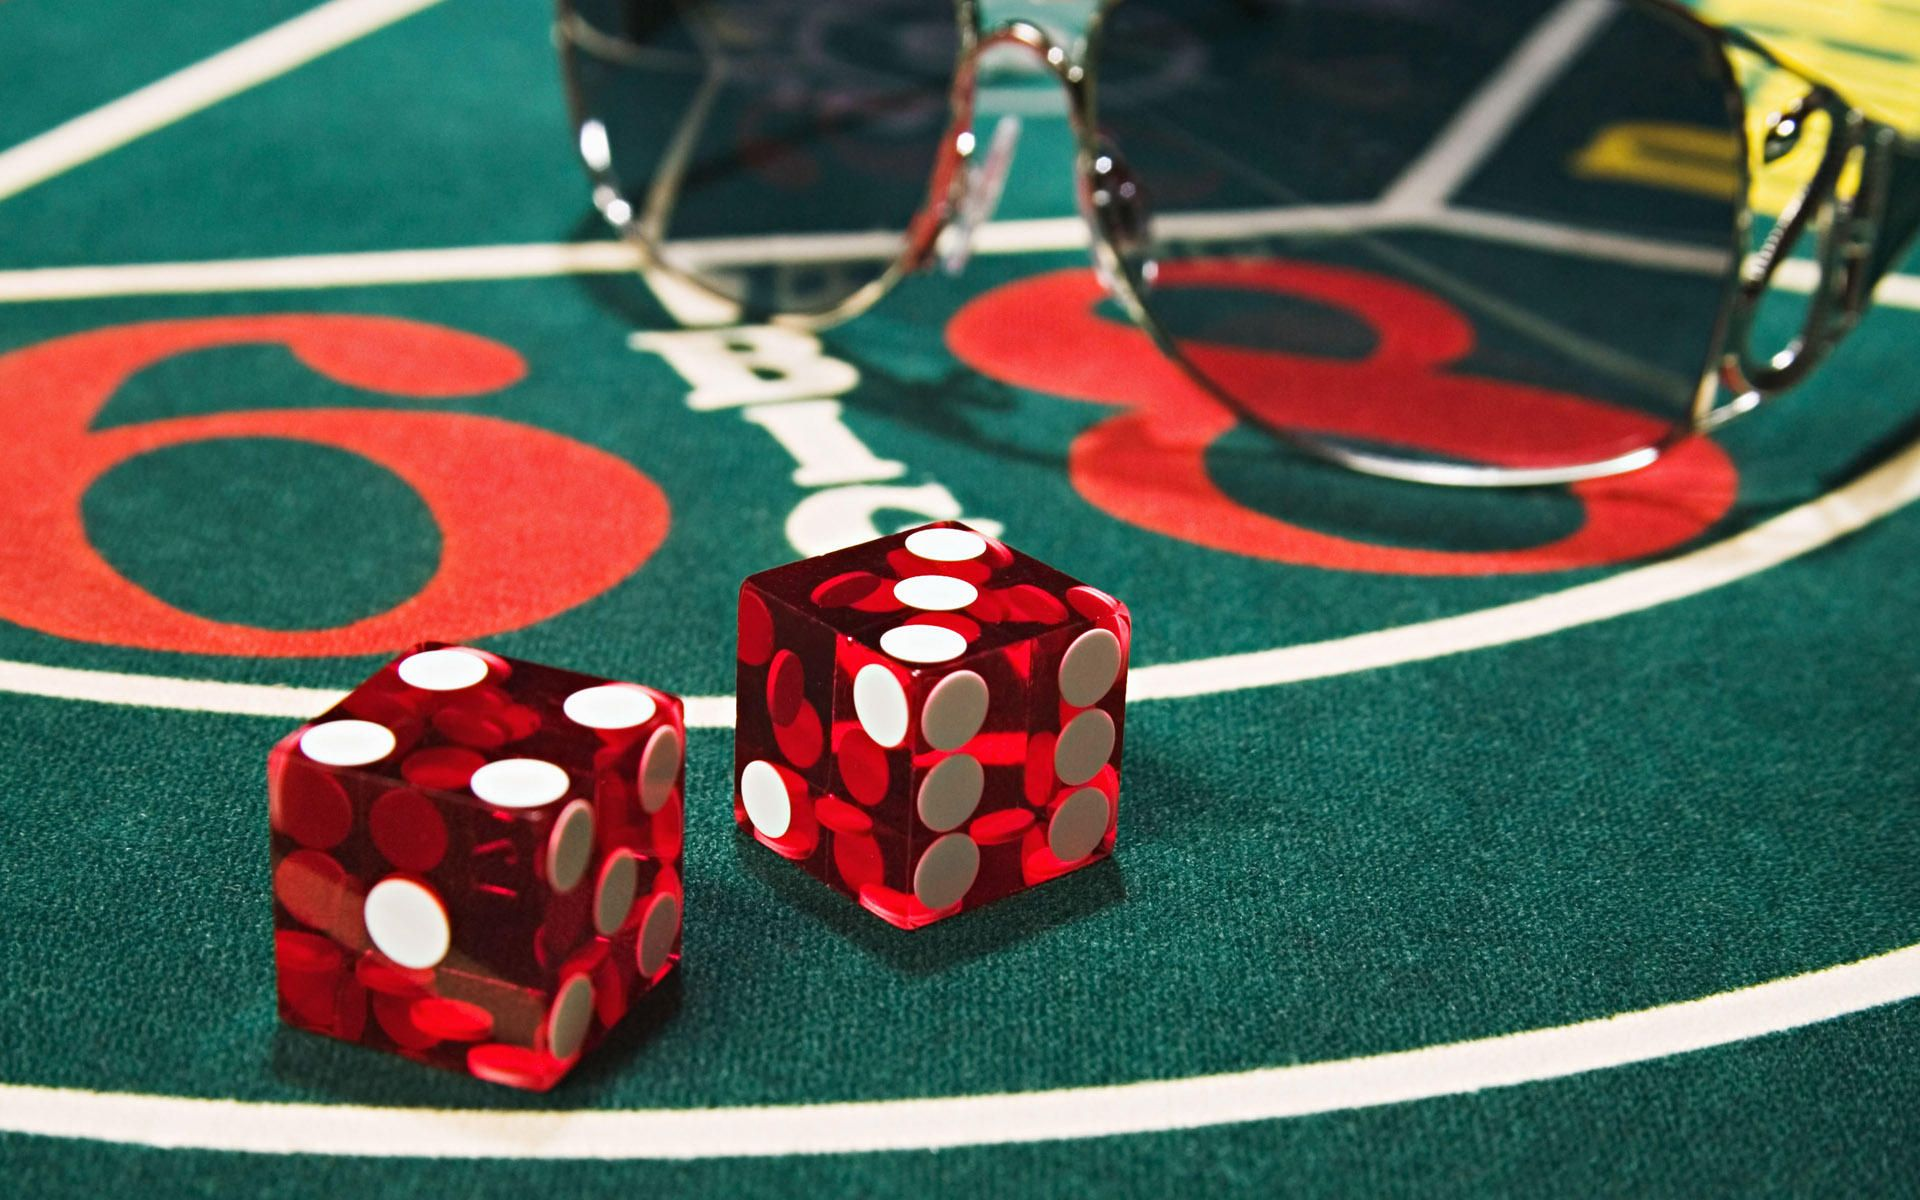 When Professionals Run into Problems with Casino, This is What They Do